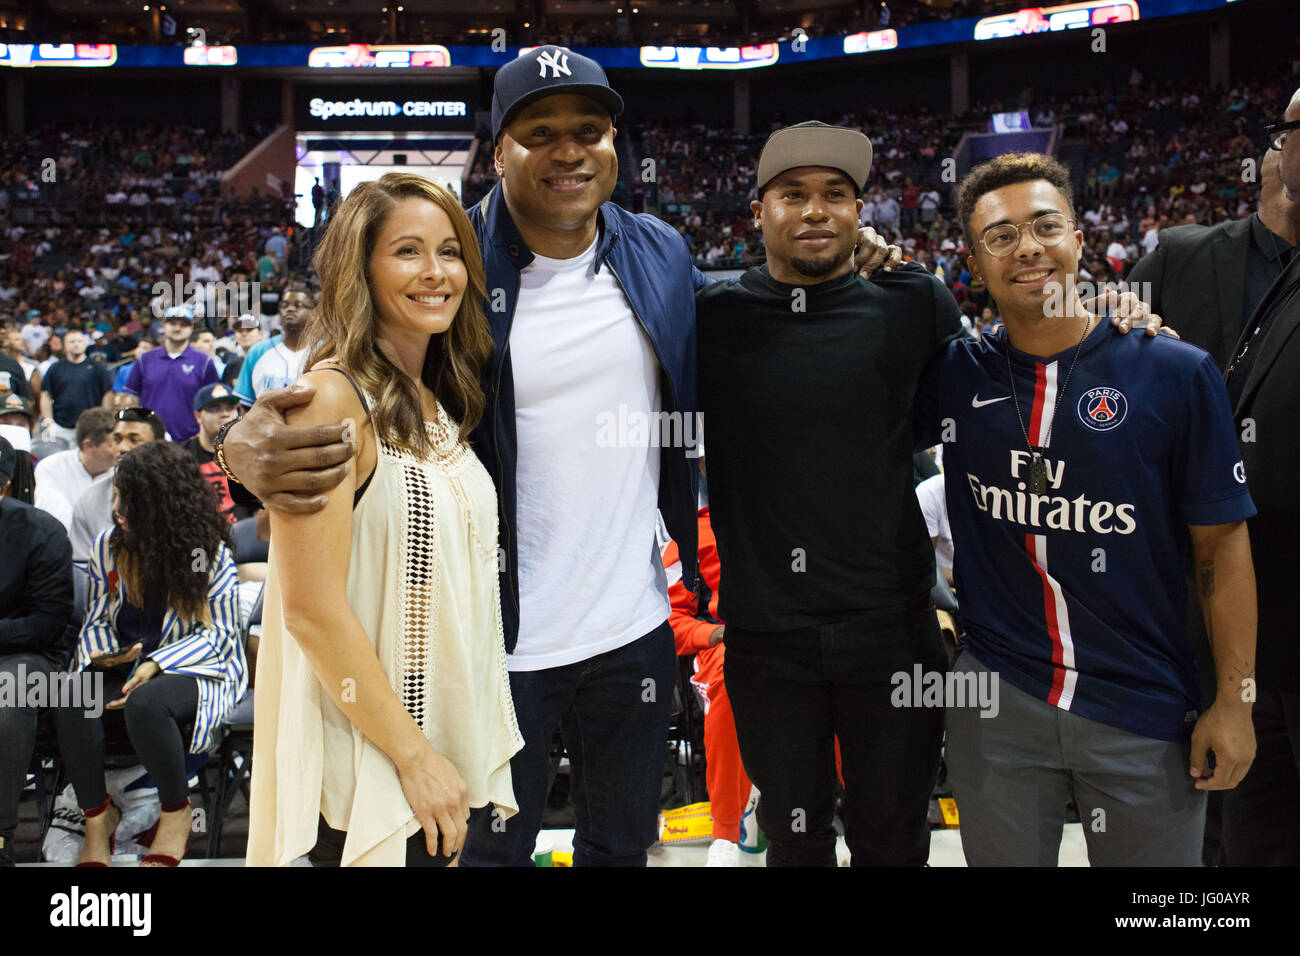 Charlotte,USA. 2nd Jul,2017. LL Cool J Steve Smith during Week 2 BIG3 basketball tournament showcases Charlotte,NC - Stock Image